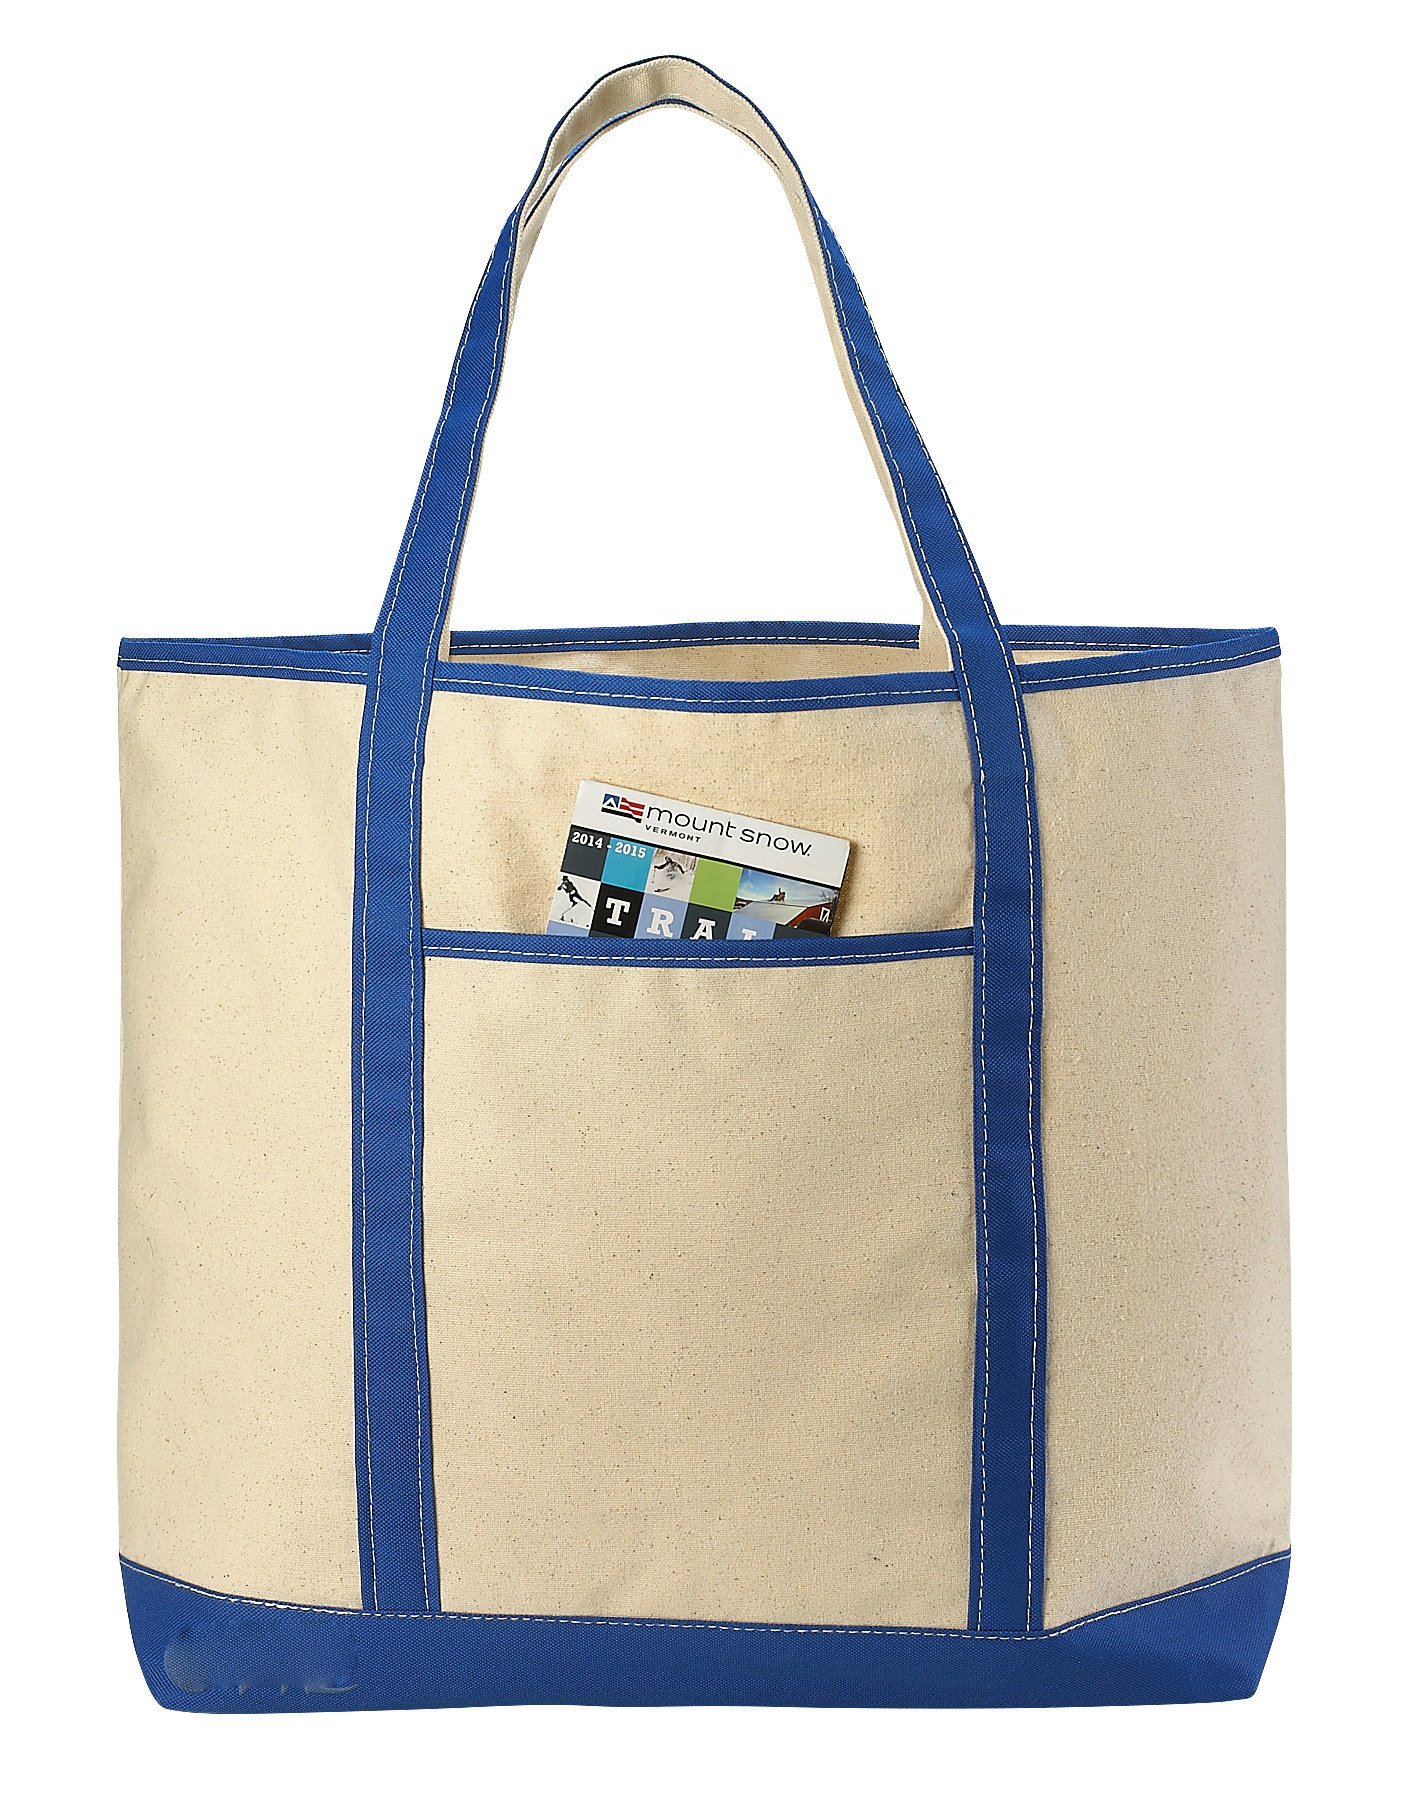 Canvas Tote Beach Bag - These Large Bags Are Strong Enough to Carry Beach Gear and Wet Towels. Front Pocket, Inside Zippered Pocket and Shoulder Straps for Easy Carrying. (Royal Blue | 22 x 16 Inches)